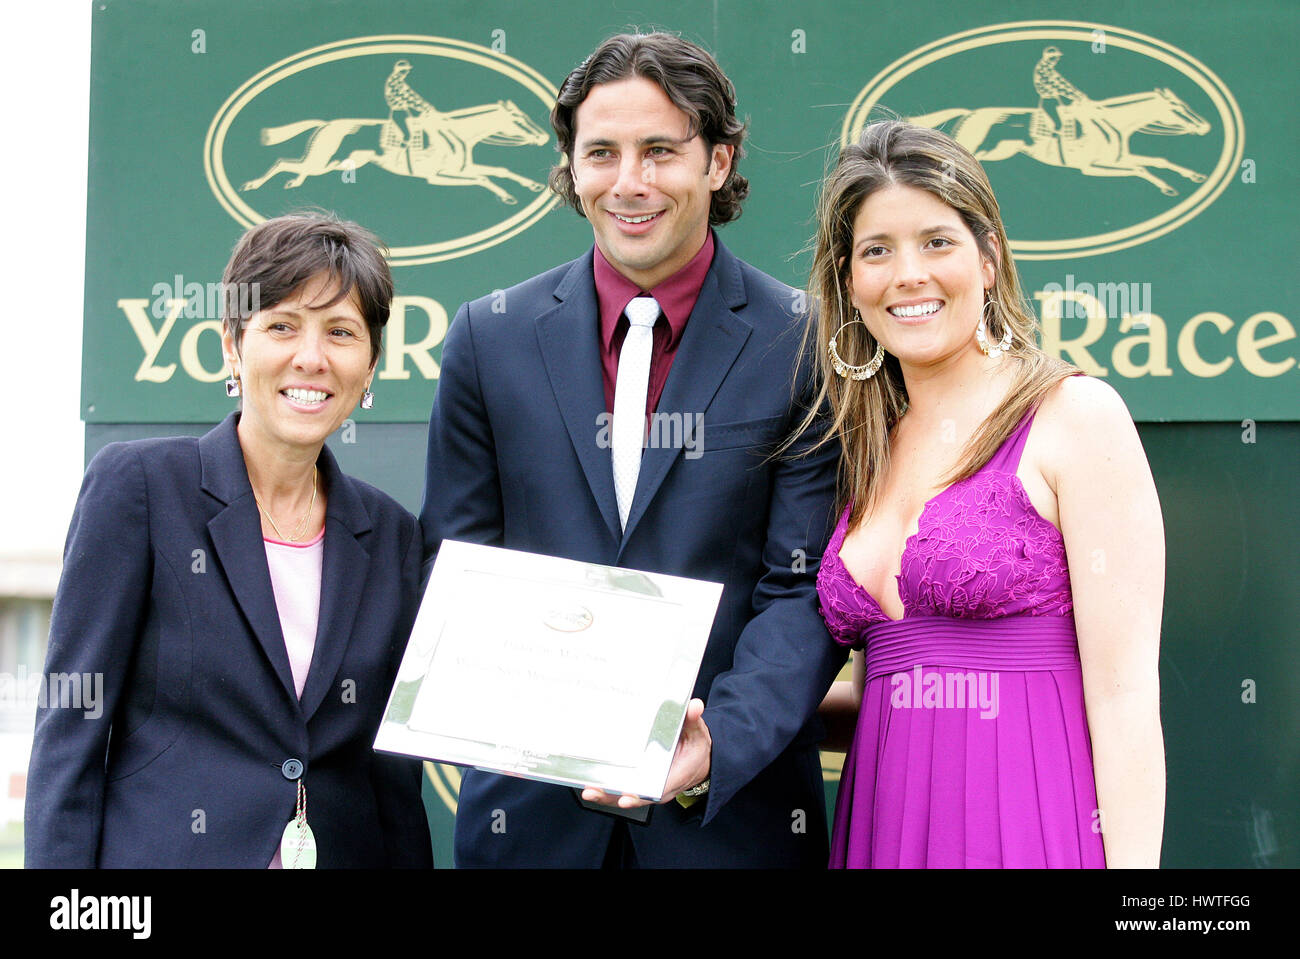 CLAUDIO PIZARRO & WIFE FOOTBALLER & RACE HORSE OWNER YORK RACECOURSE YORK ENGLAND 16 May 2008 - Stock Image